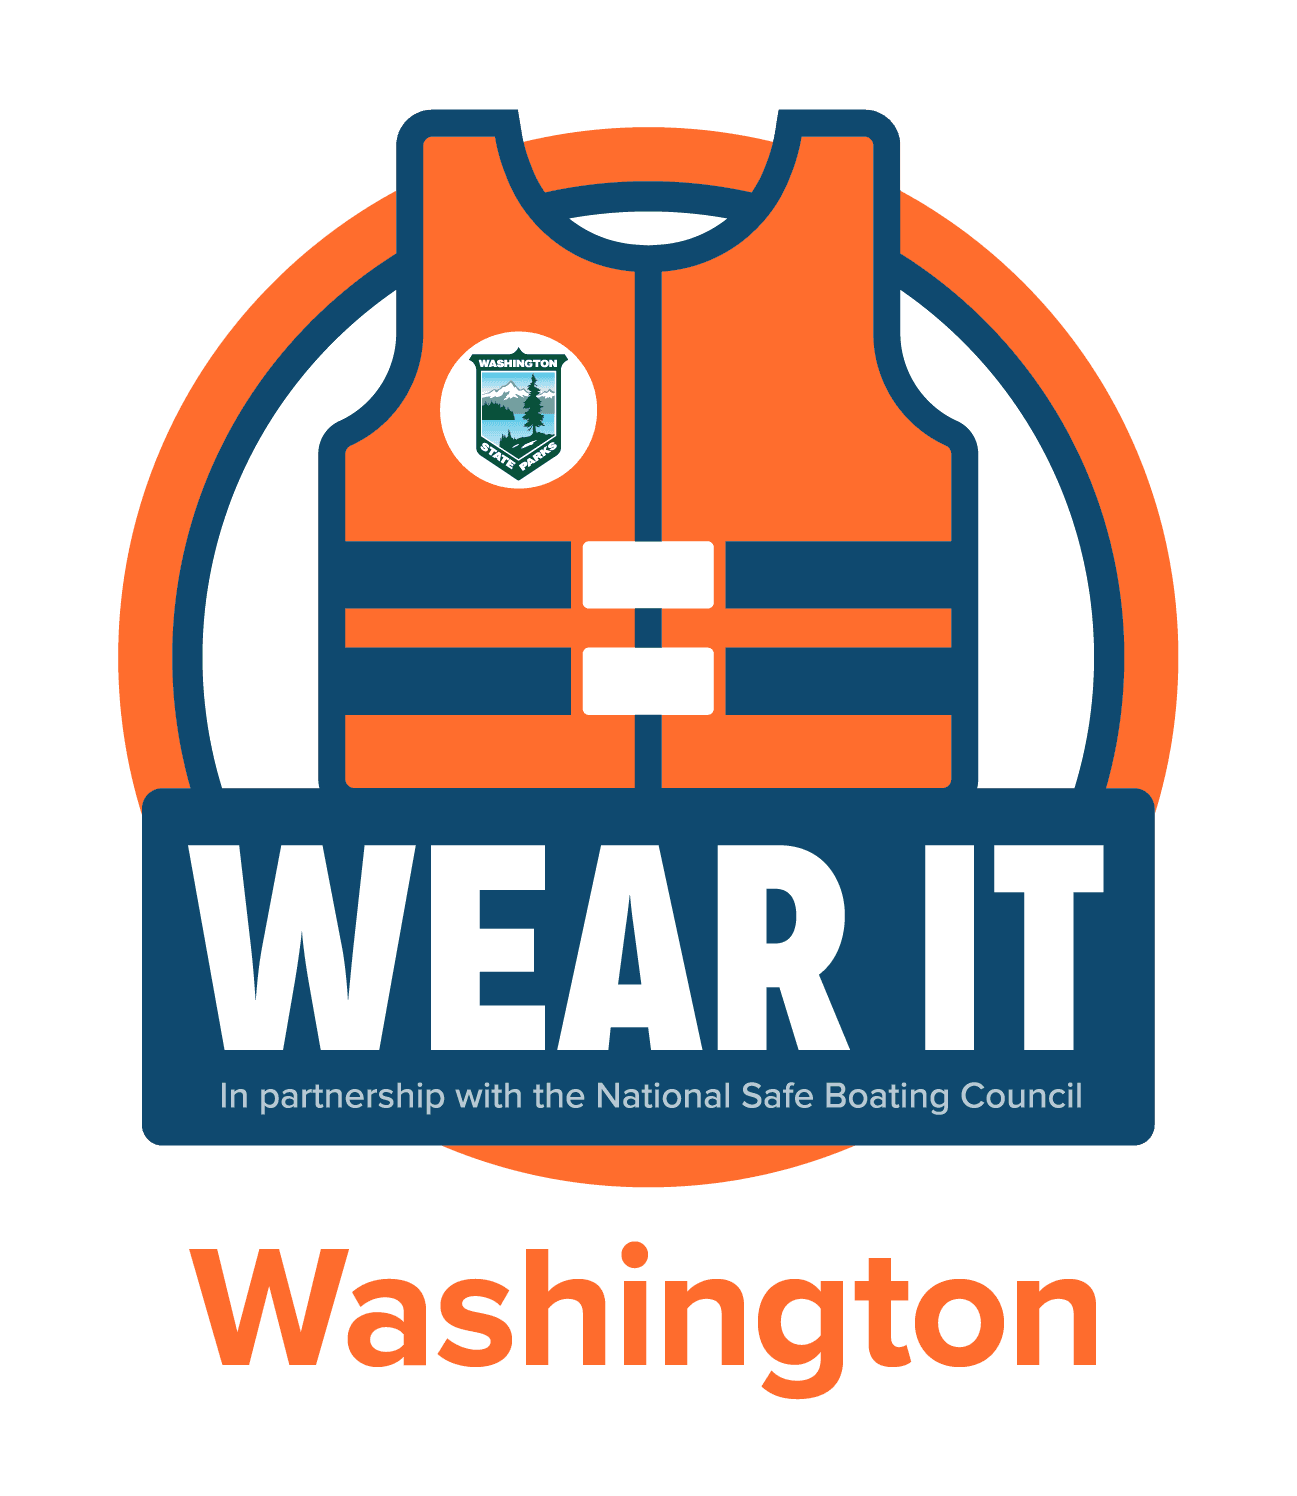 WearIt-Partner_Washington State Parks